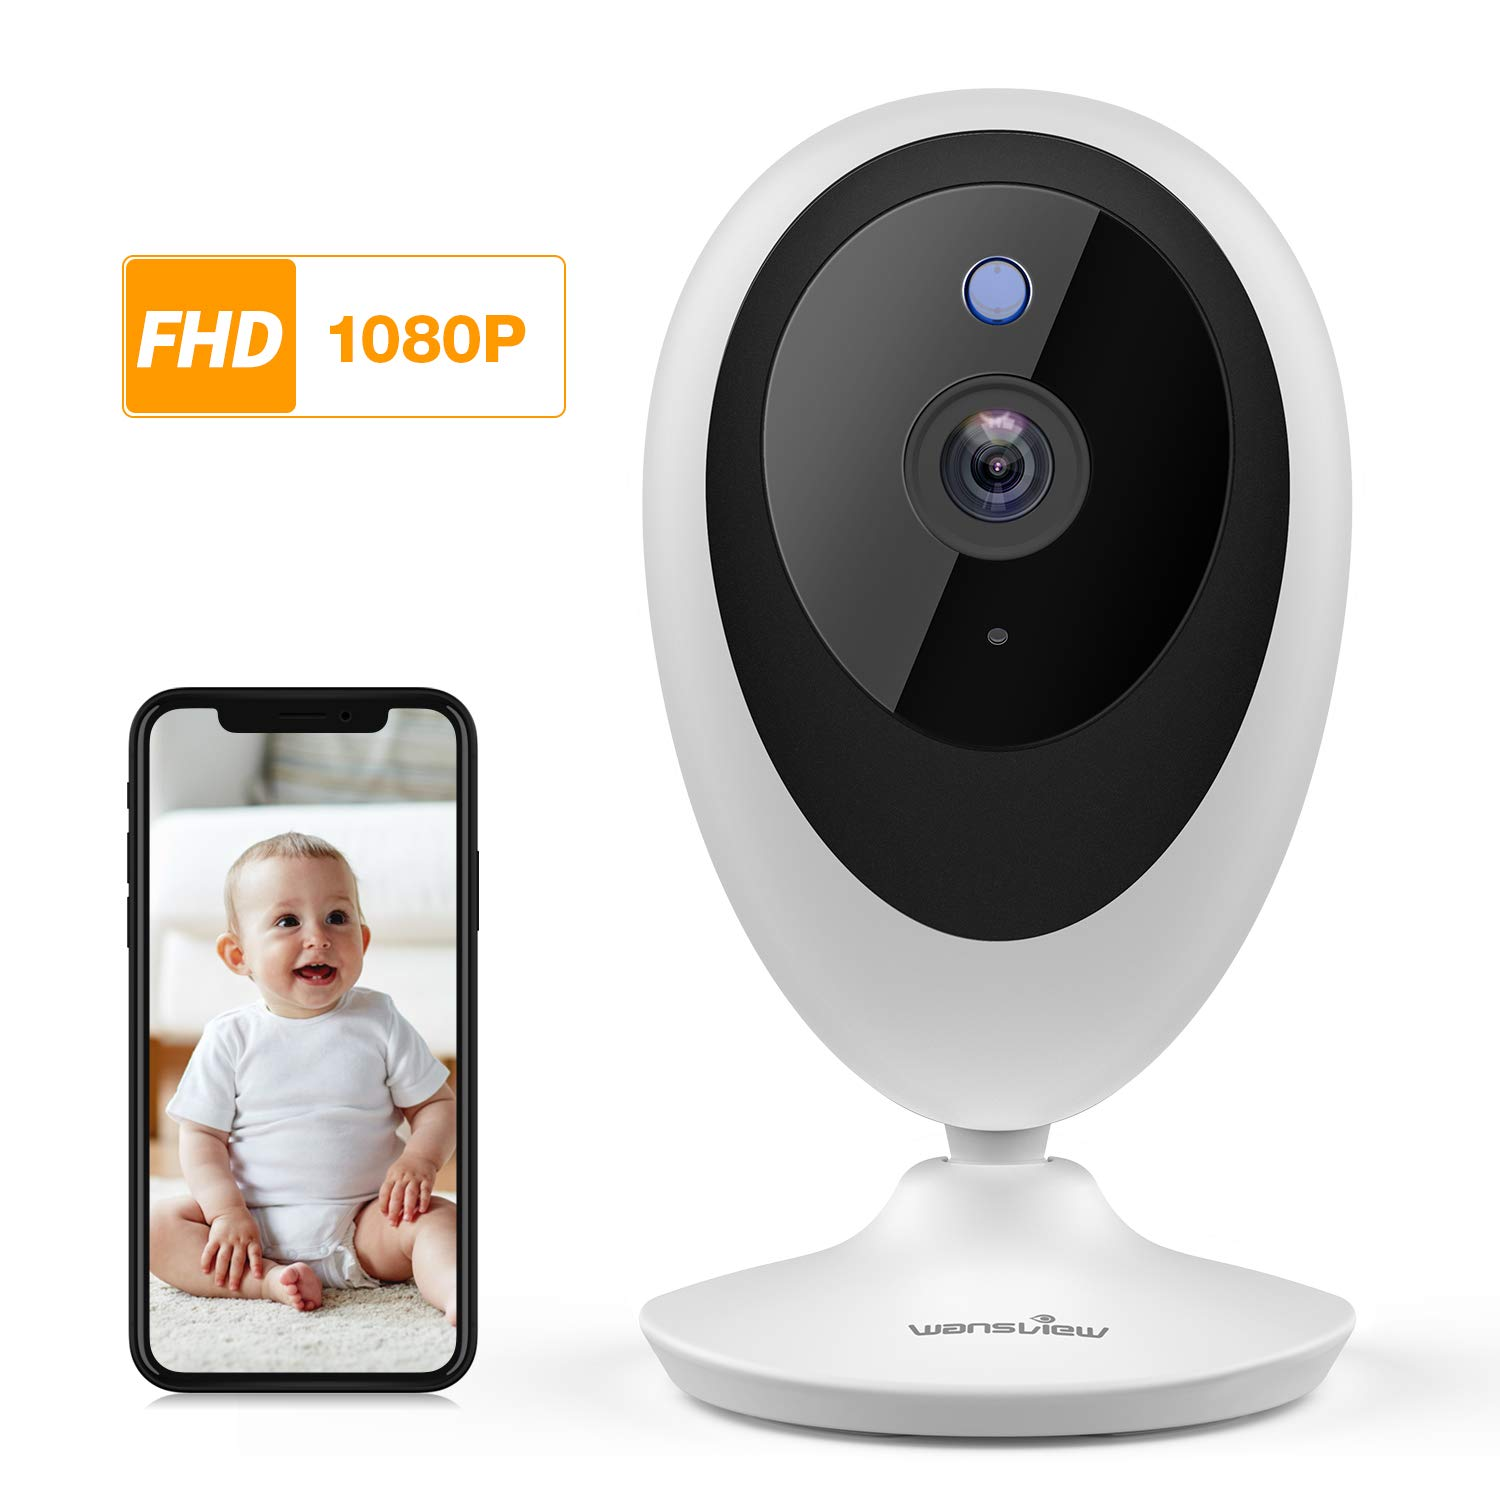 Baby Monitor, Wireless WiFi Home Security System 1080P FHD Wansview for Elder and Pet Camera with Motion Detection, 2 Way Audio, Works with Alexa, TF Card and Cloud Available K5 by wansview